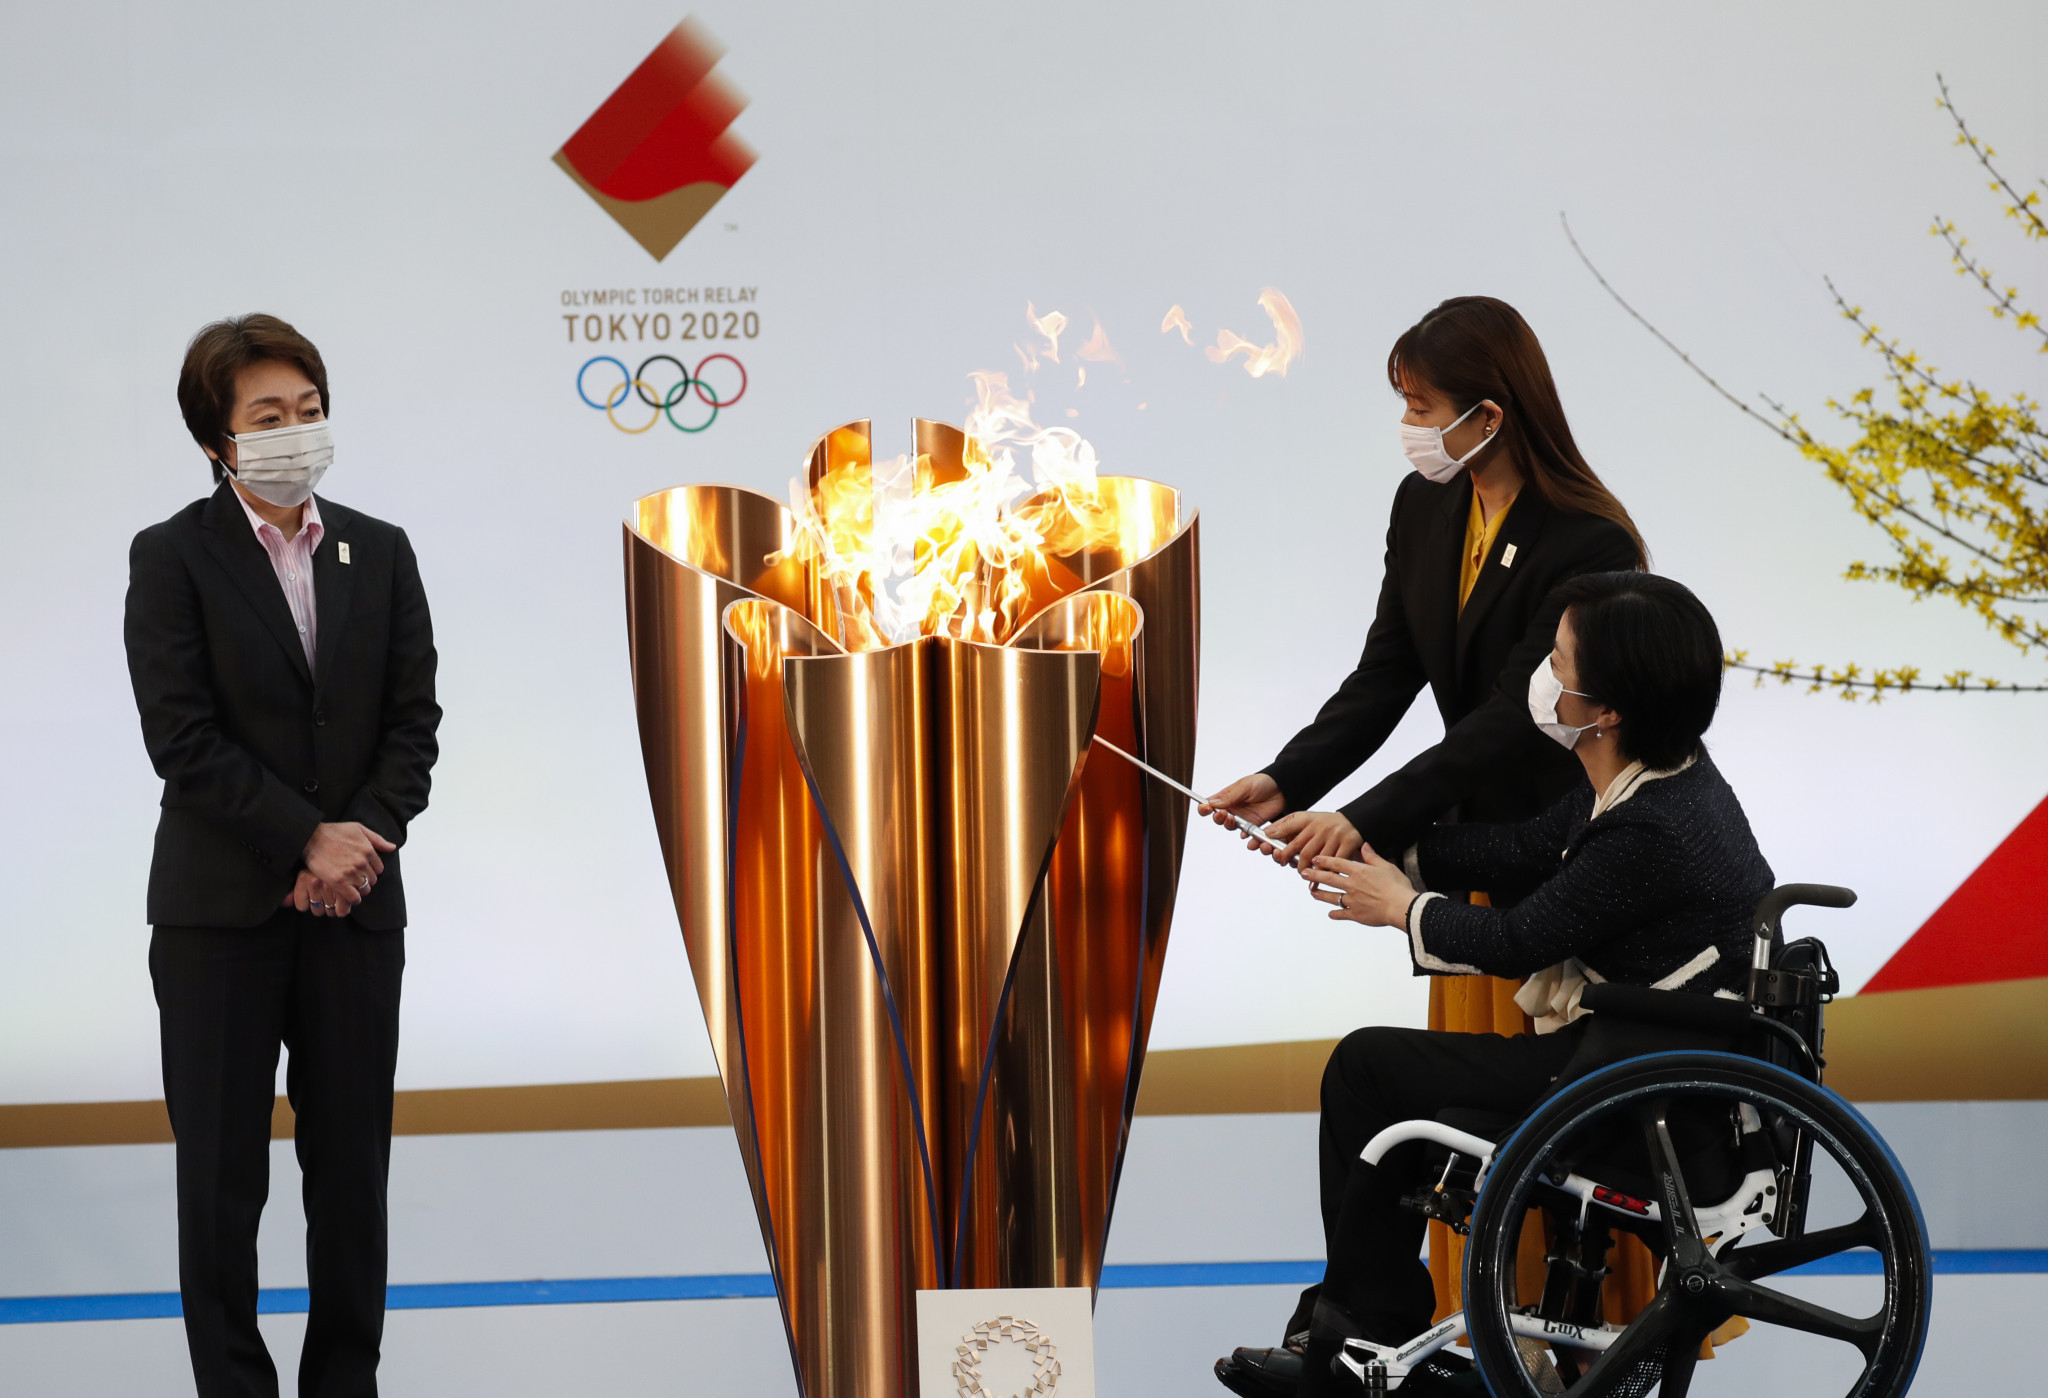 Tokyo Olympics torch relay got off to a low-key start after a year's coronavirus delay on Thursday